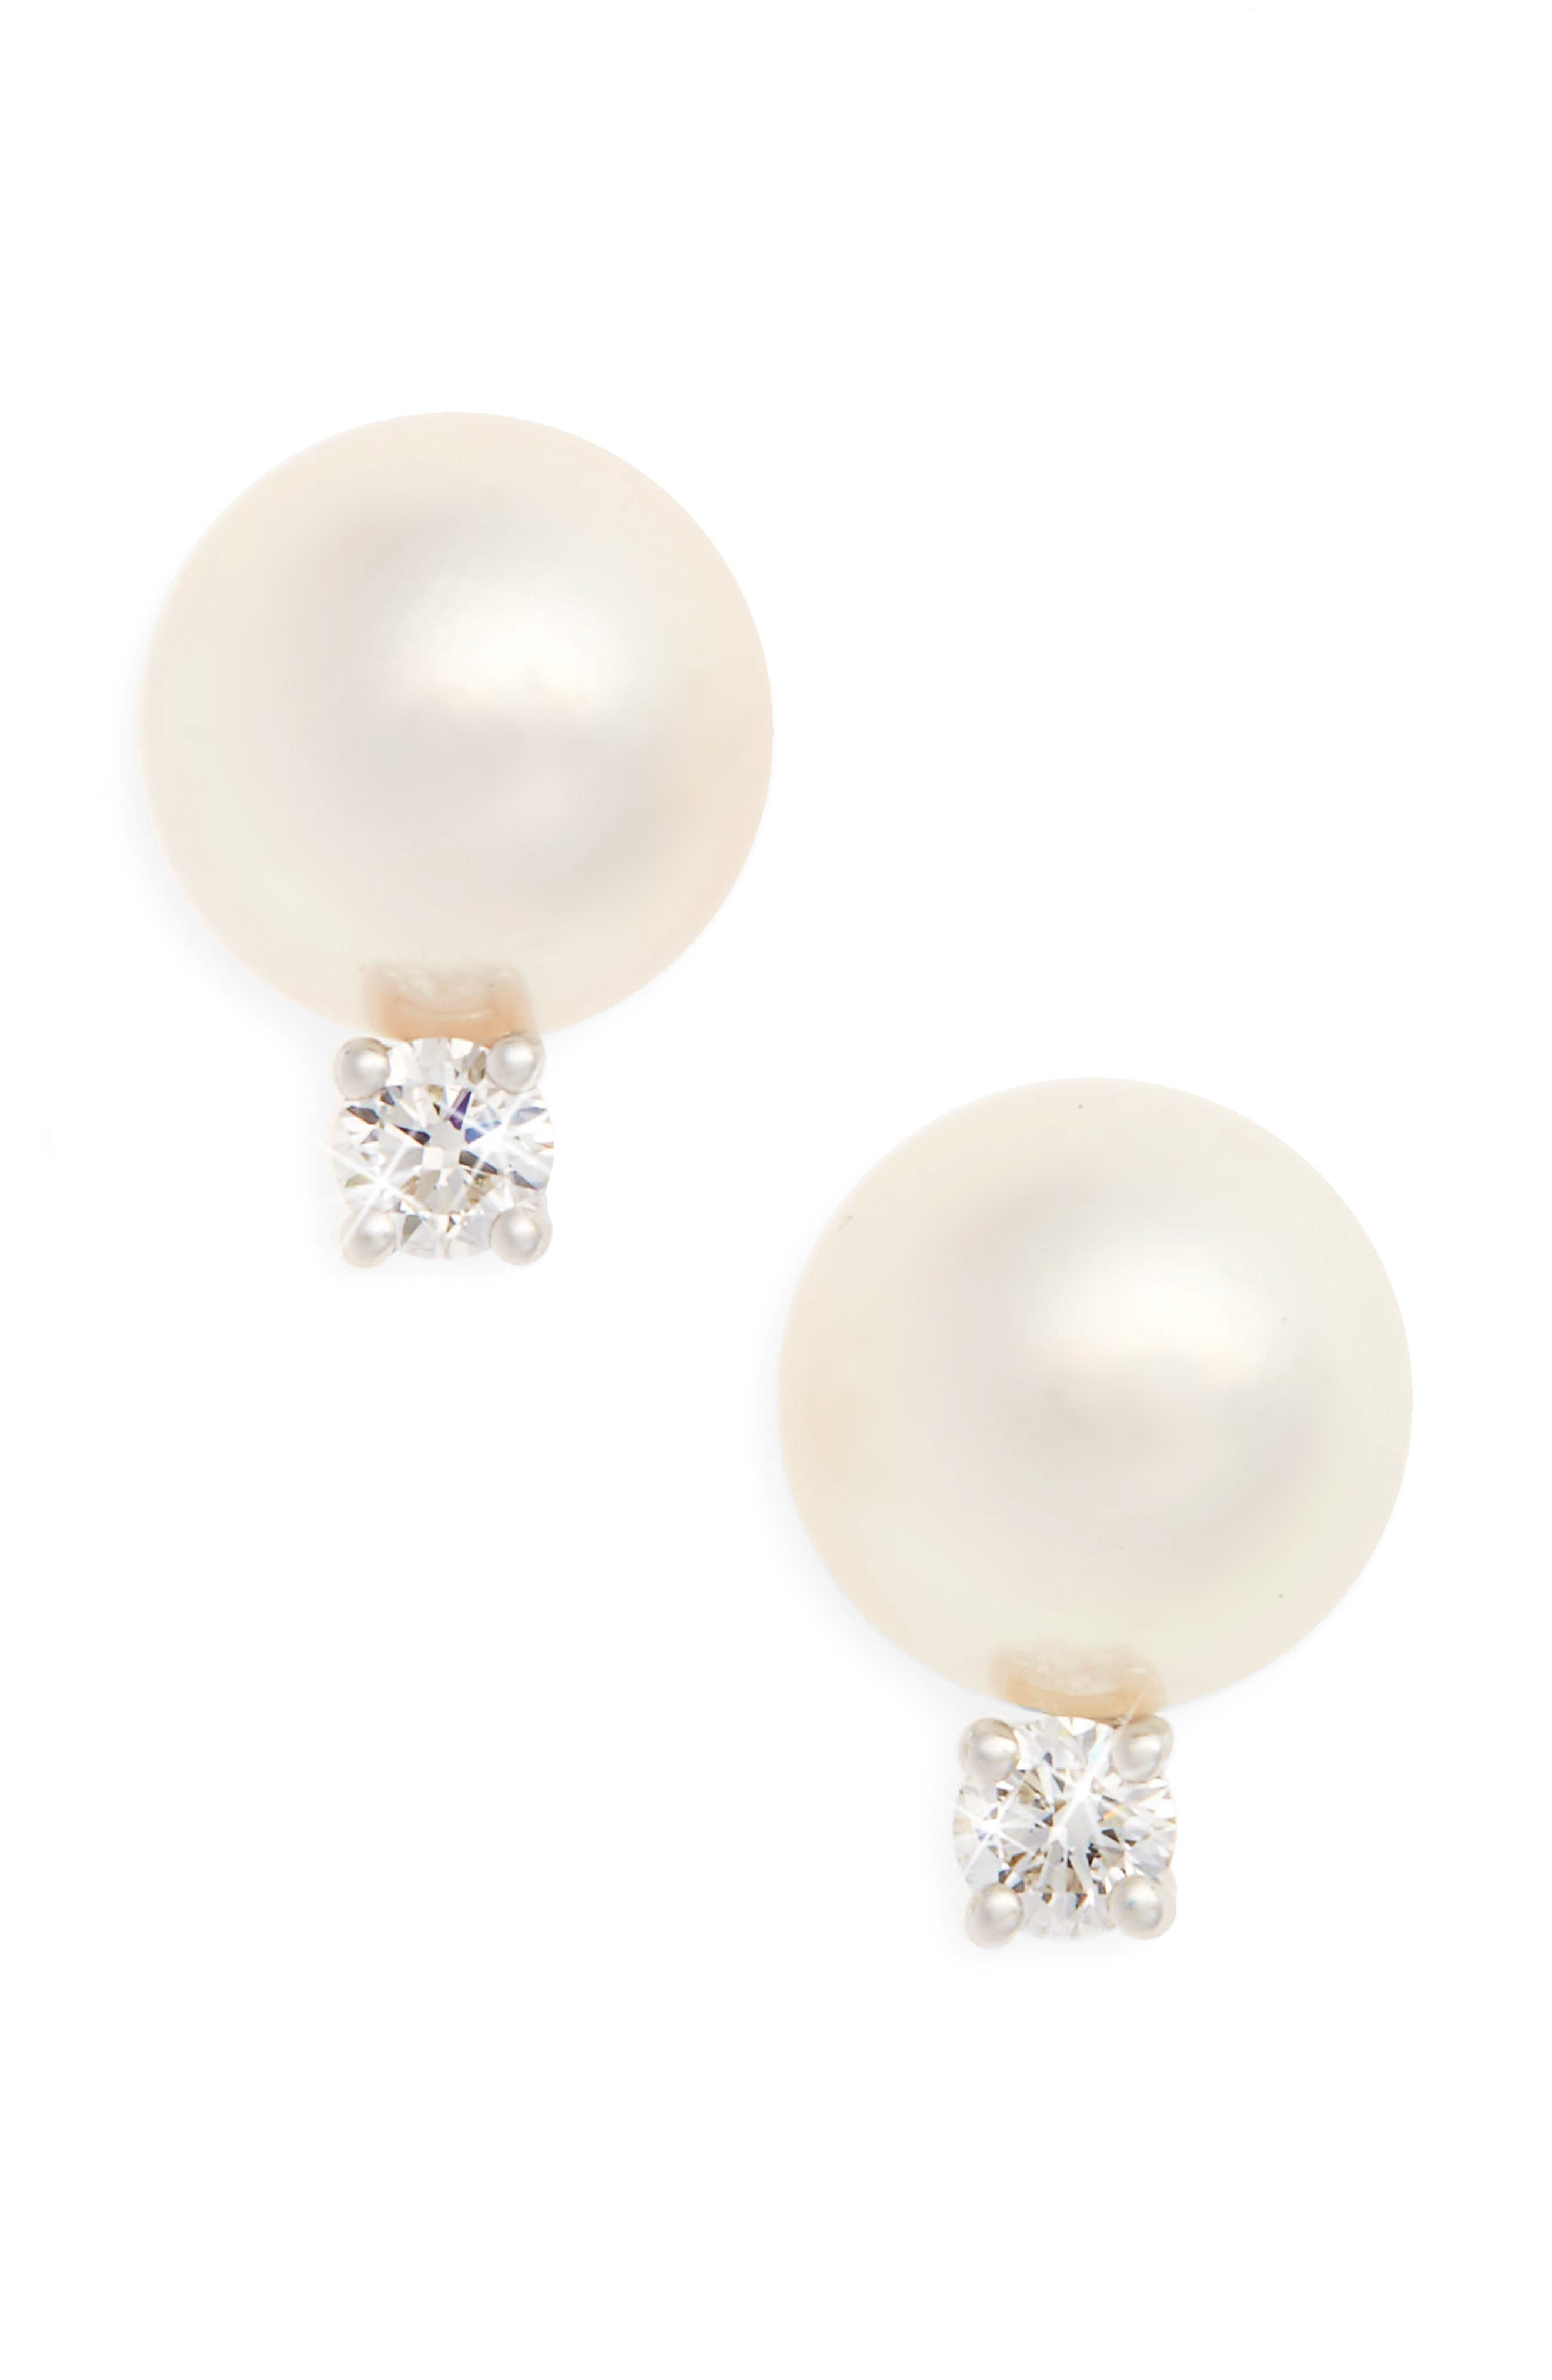 Main Image - Mikimoto Akoya Pearl & Diamond Stud Earrings